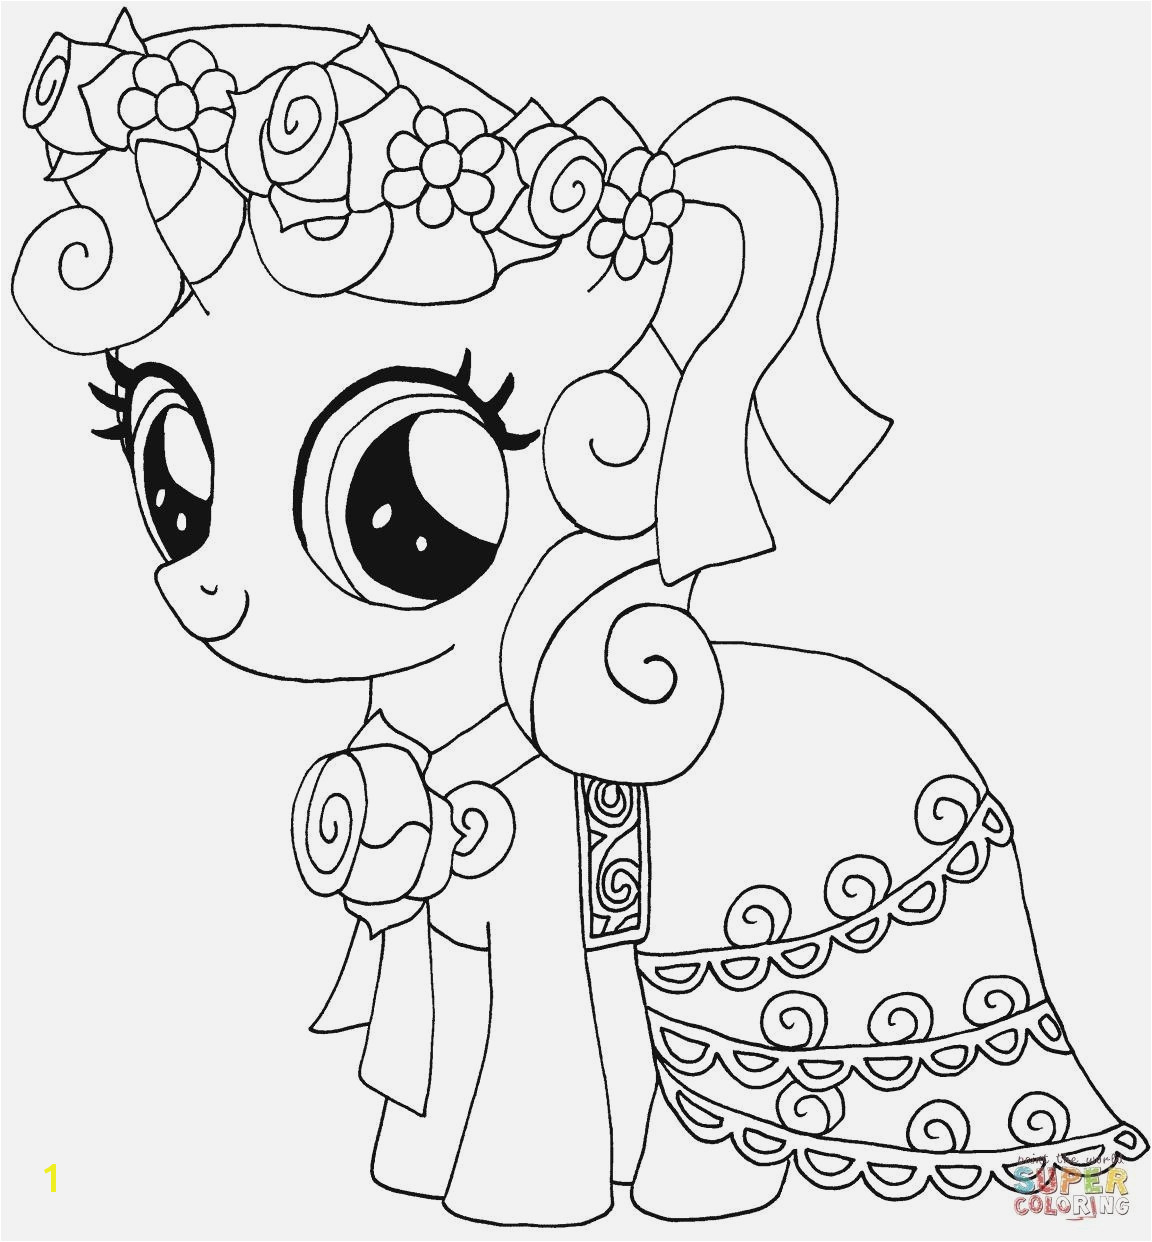 My Pretty Pony Coloring Pages My Little Pony Coloring Pages Best Easy Coloring Pages My Little